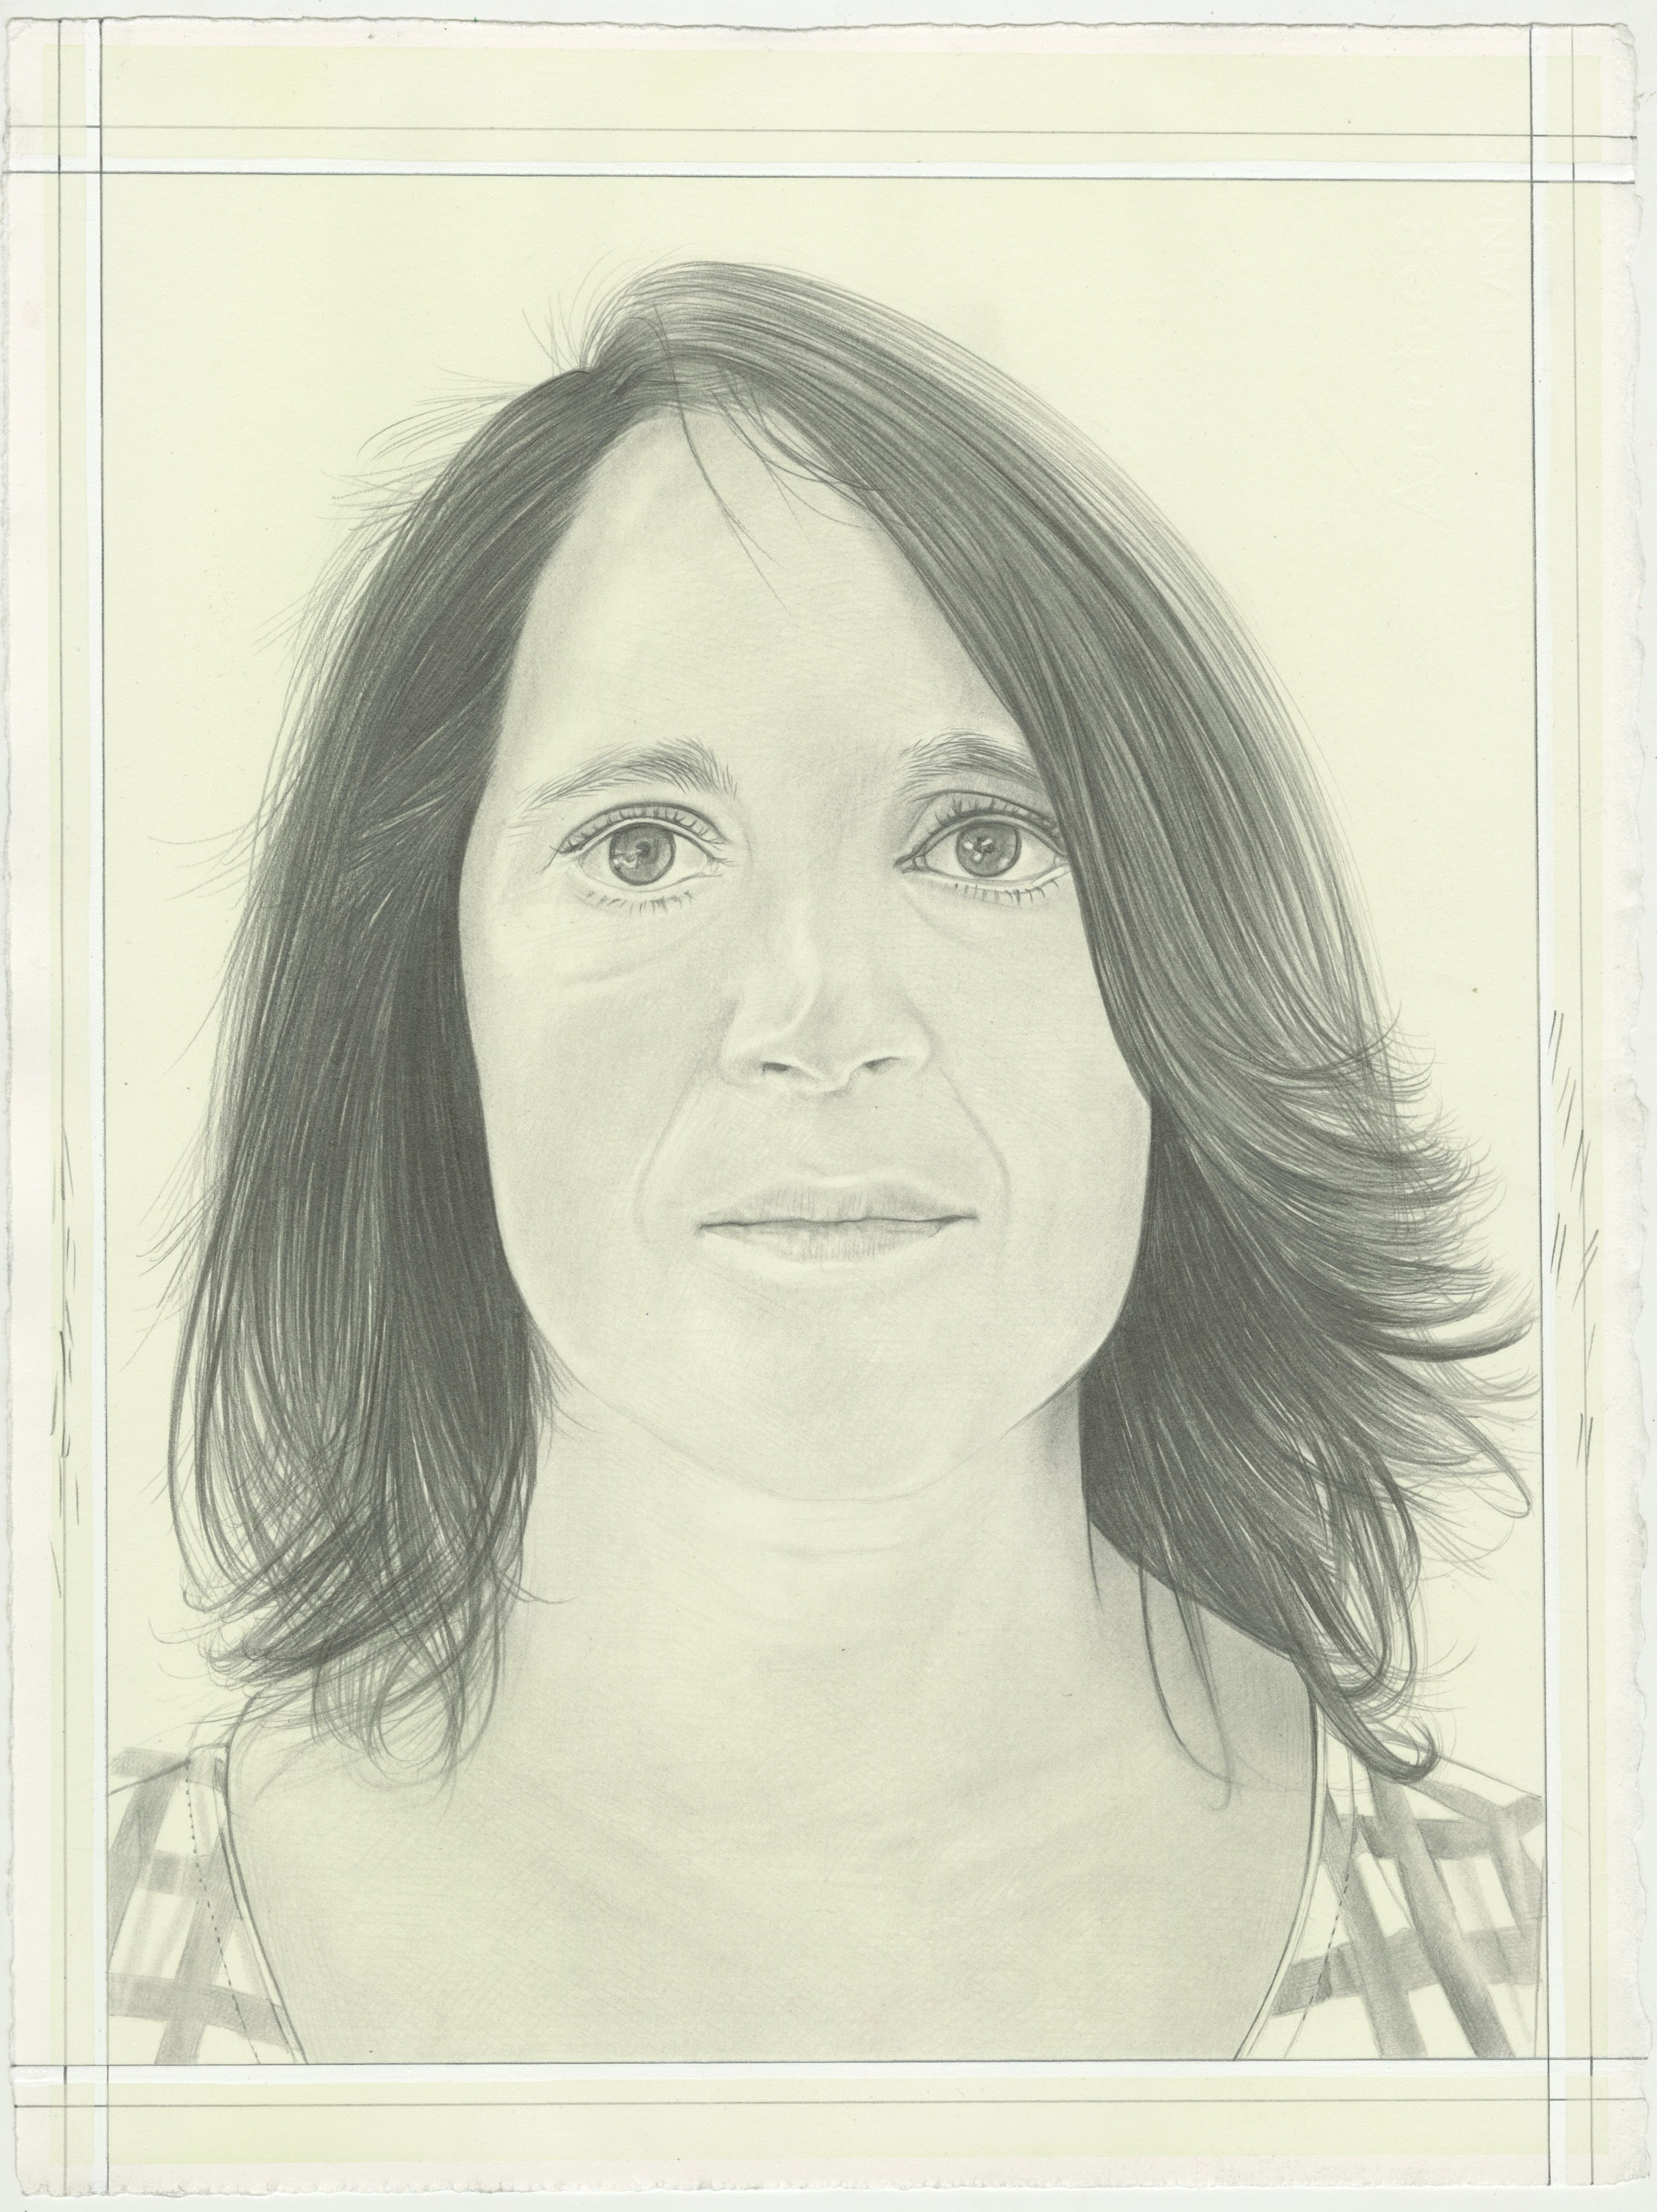 Francesca Pietropaolo. Pencil on Paper by Phong H. Bui.